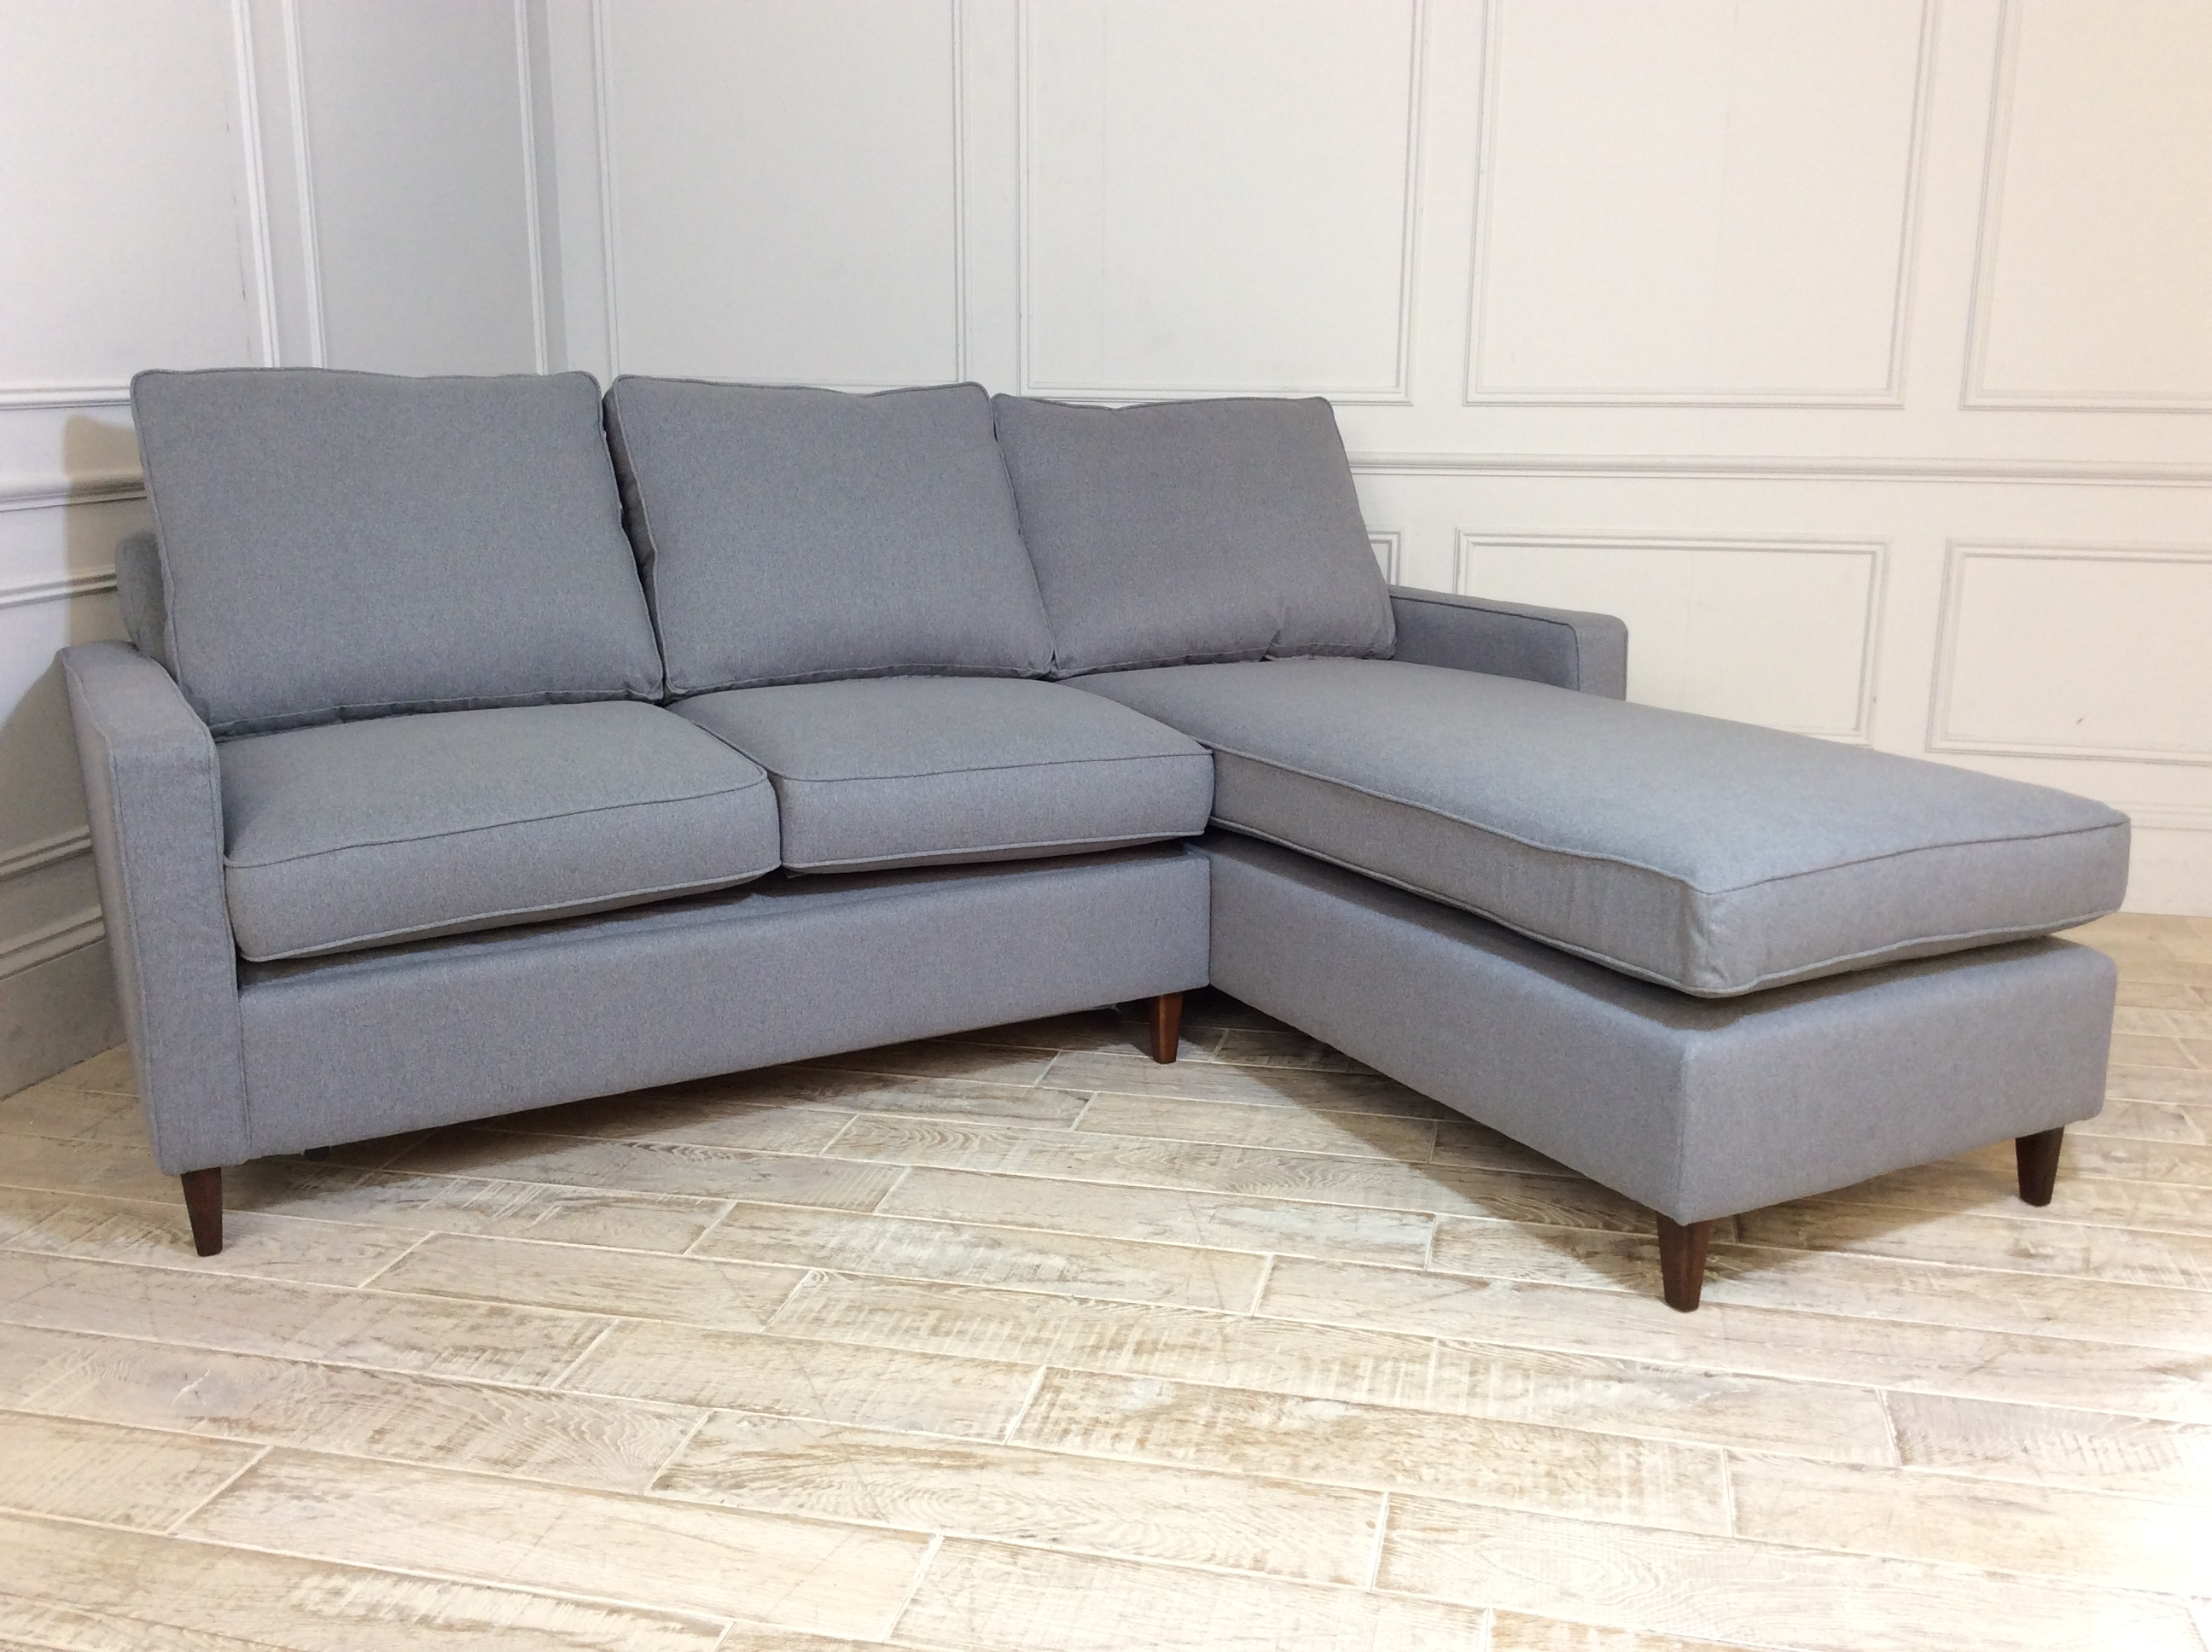 Beckenham 2 Seater Chaise Sofa Bed in Wolf Grey